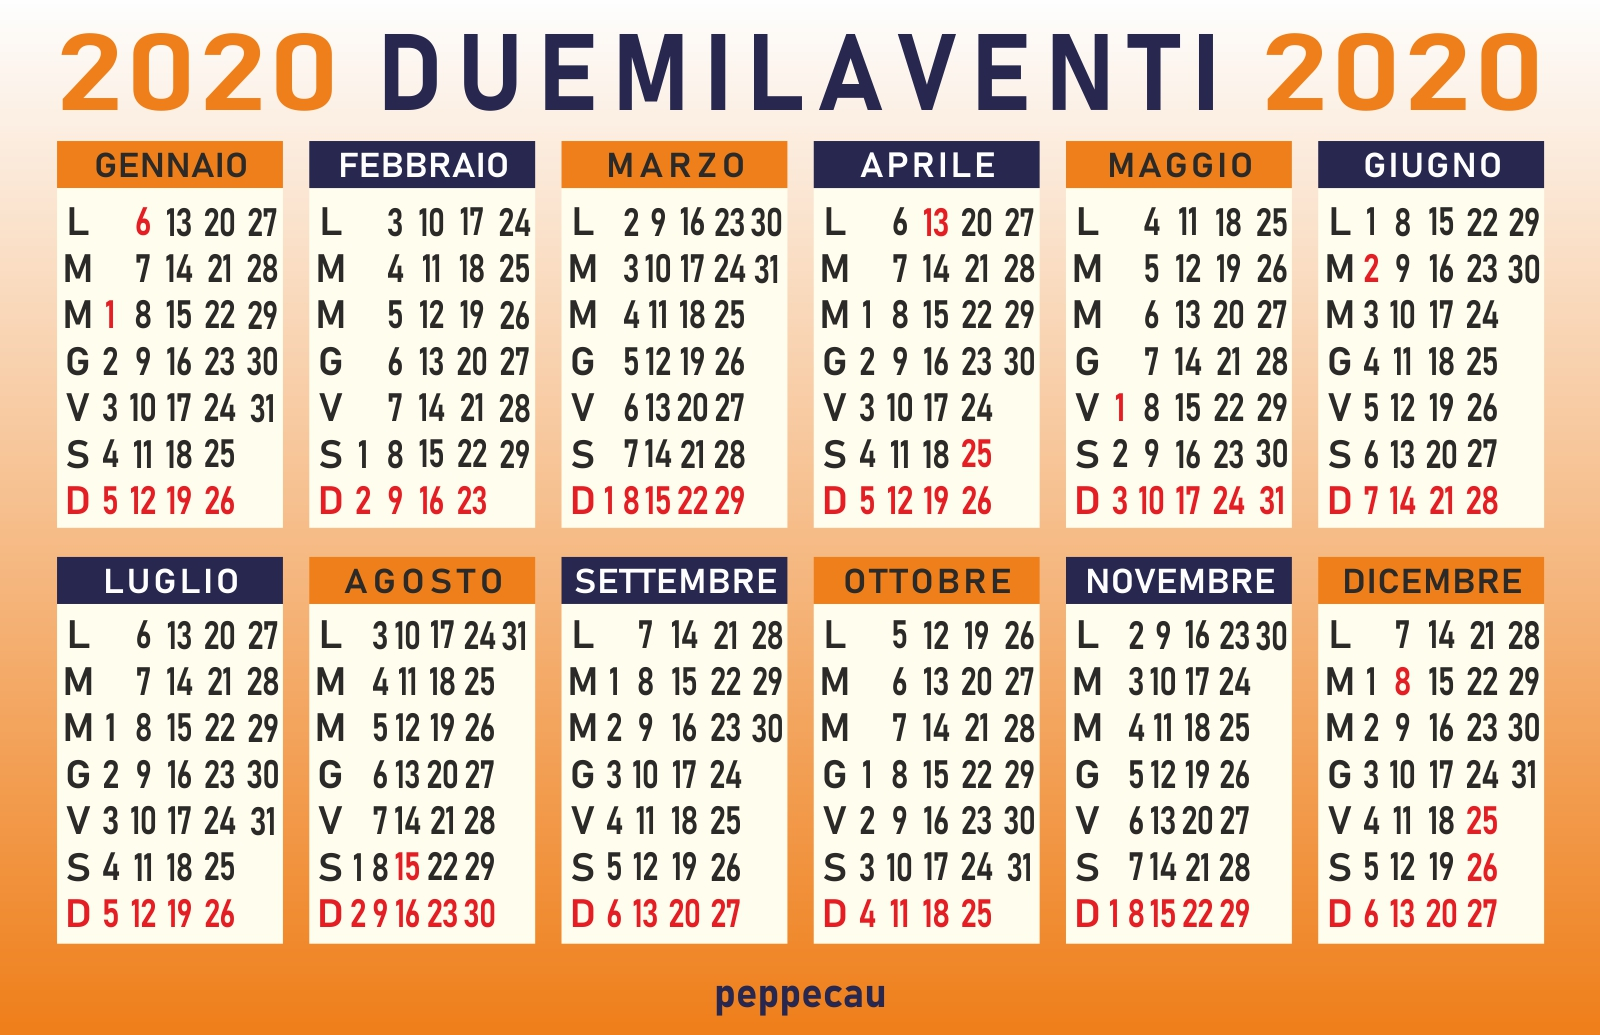 Calendario 2020 Tascabile.Calendario Peppecau Calendario 2020 Mensile